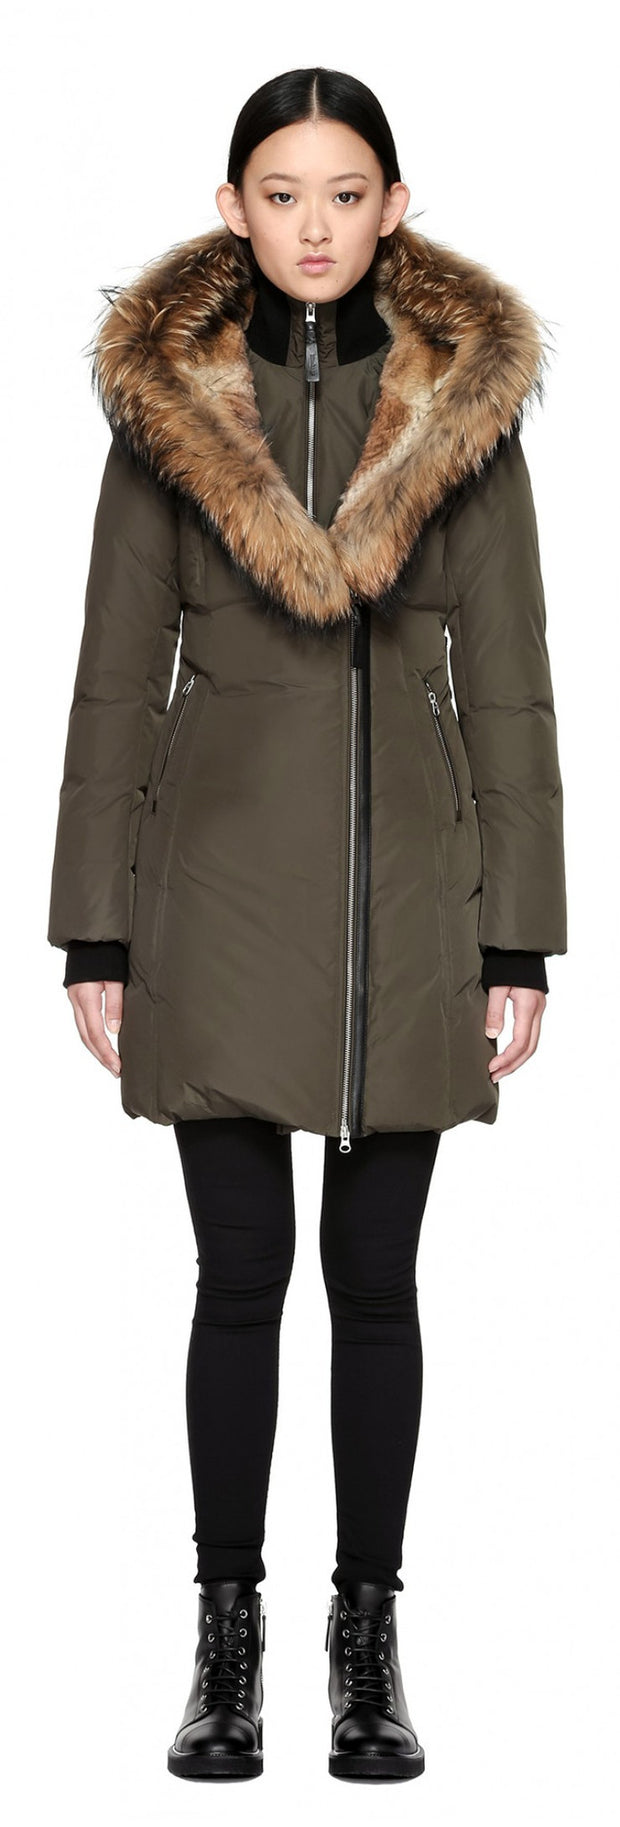 Mackage Mackage- Trish Coat Army at Blond Genius - 5